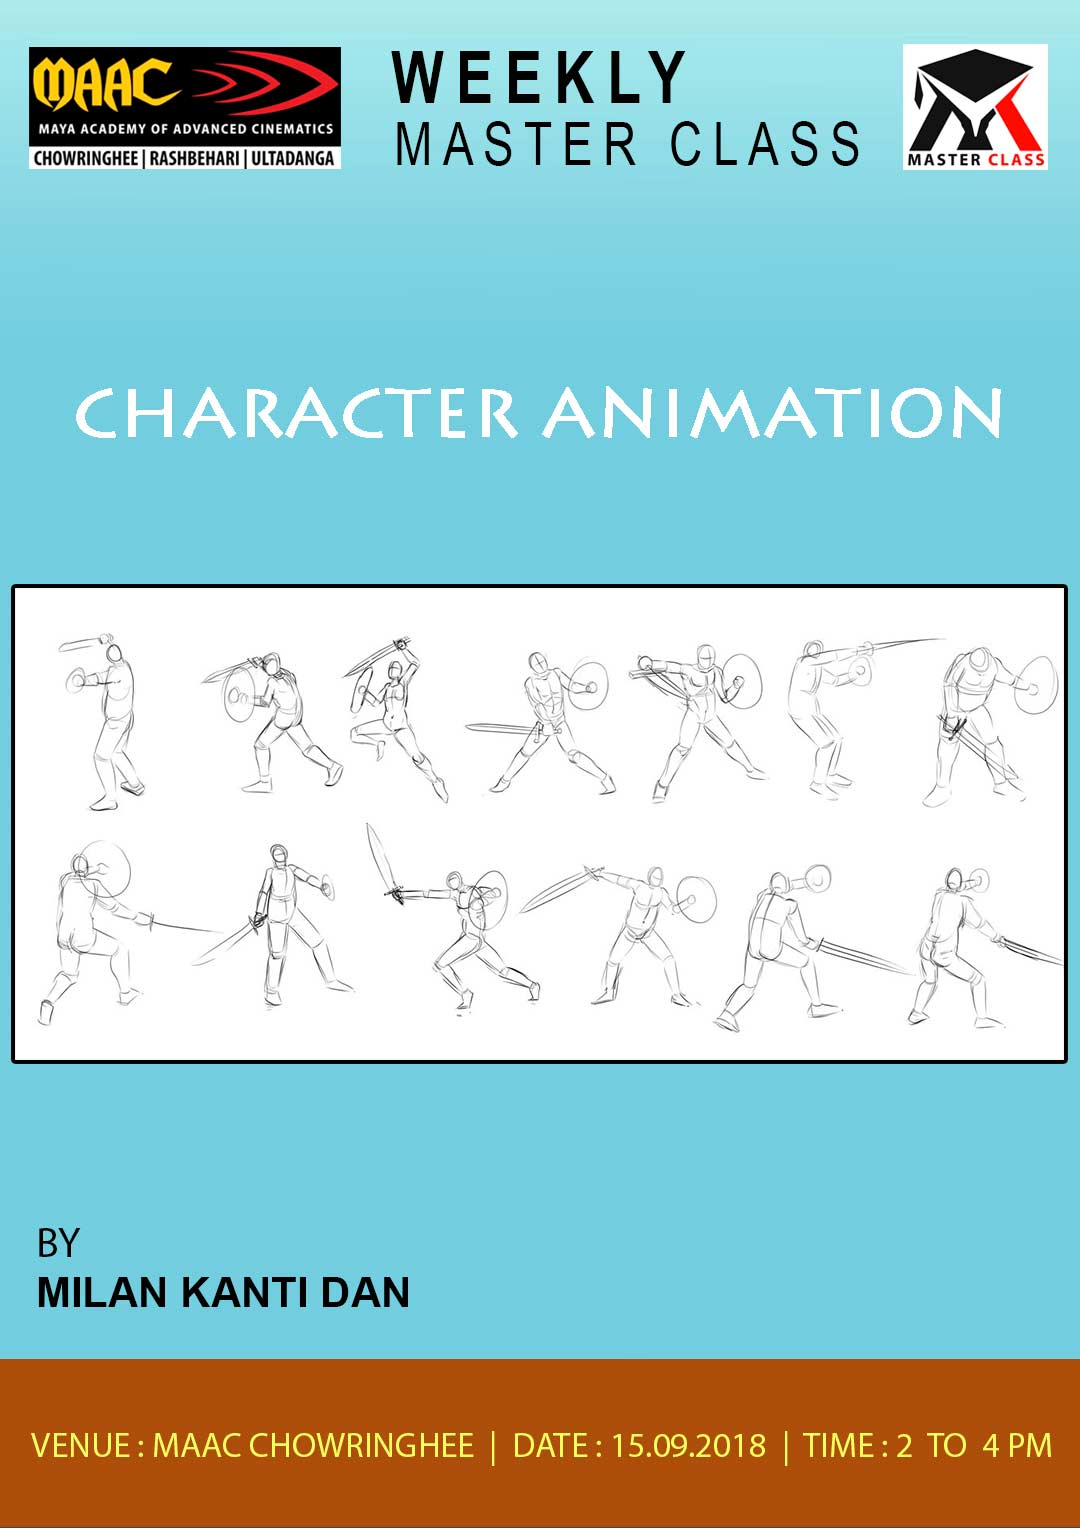 Weekly Master Class on Character Animation